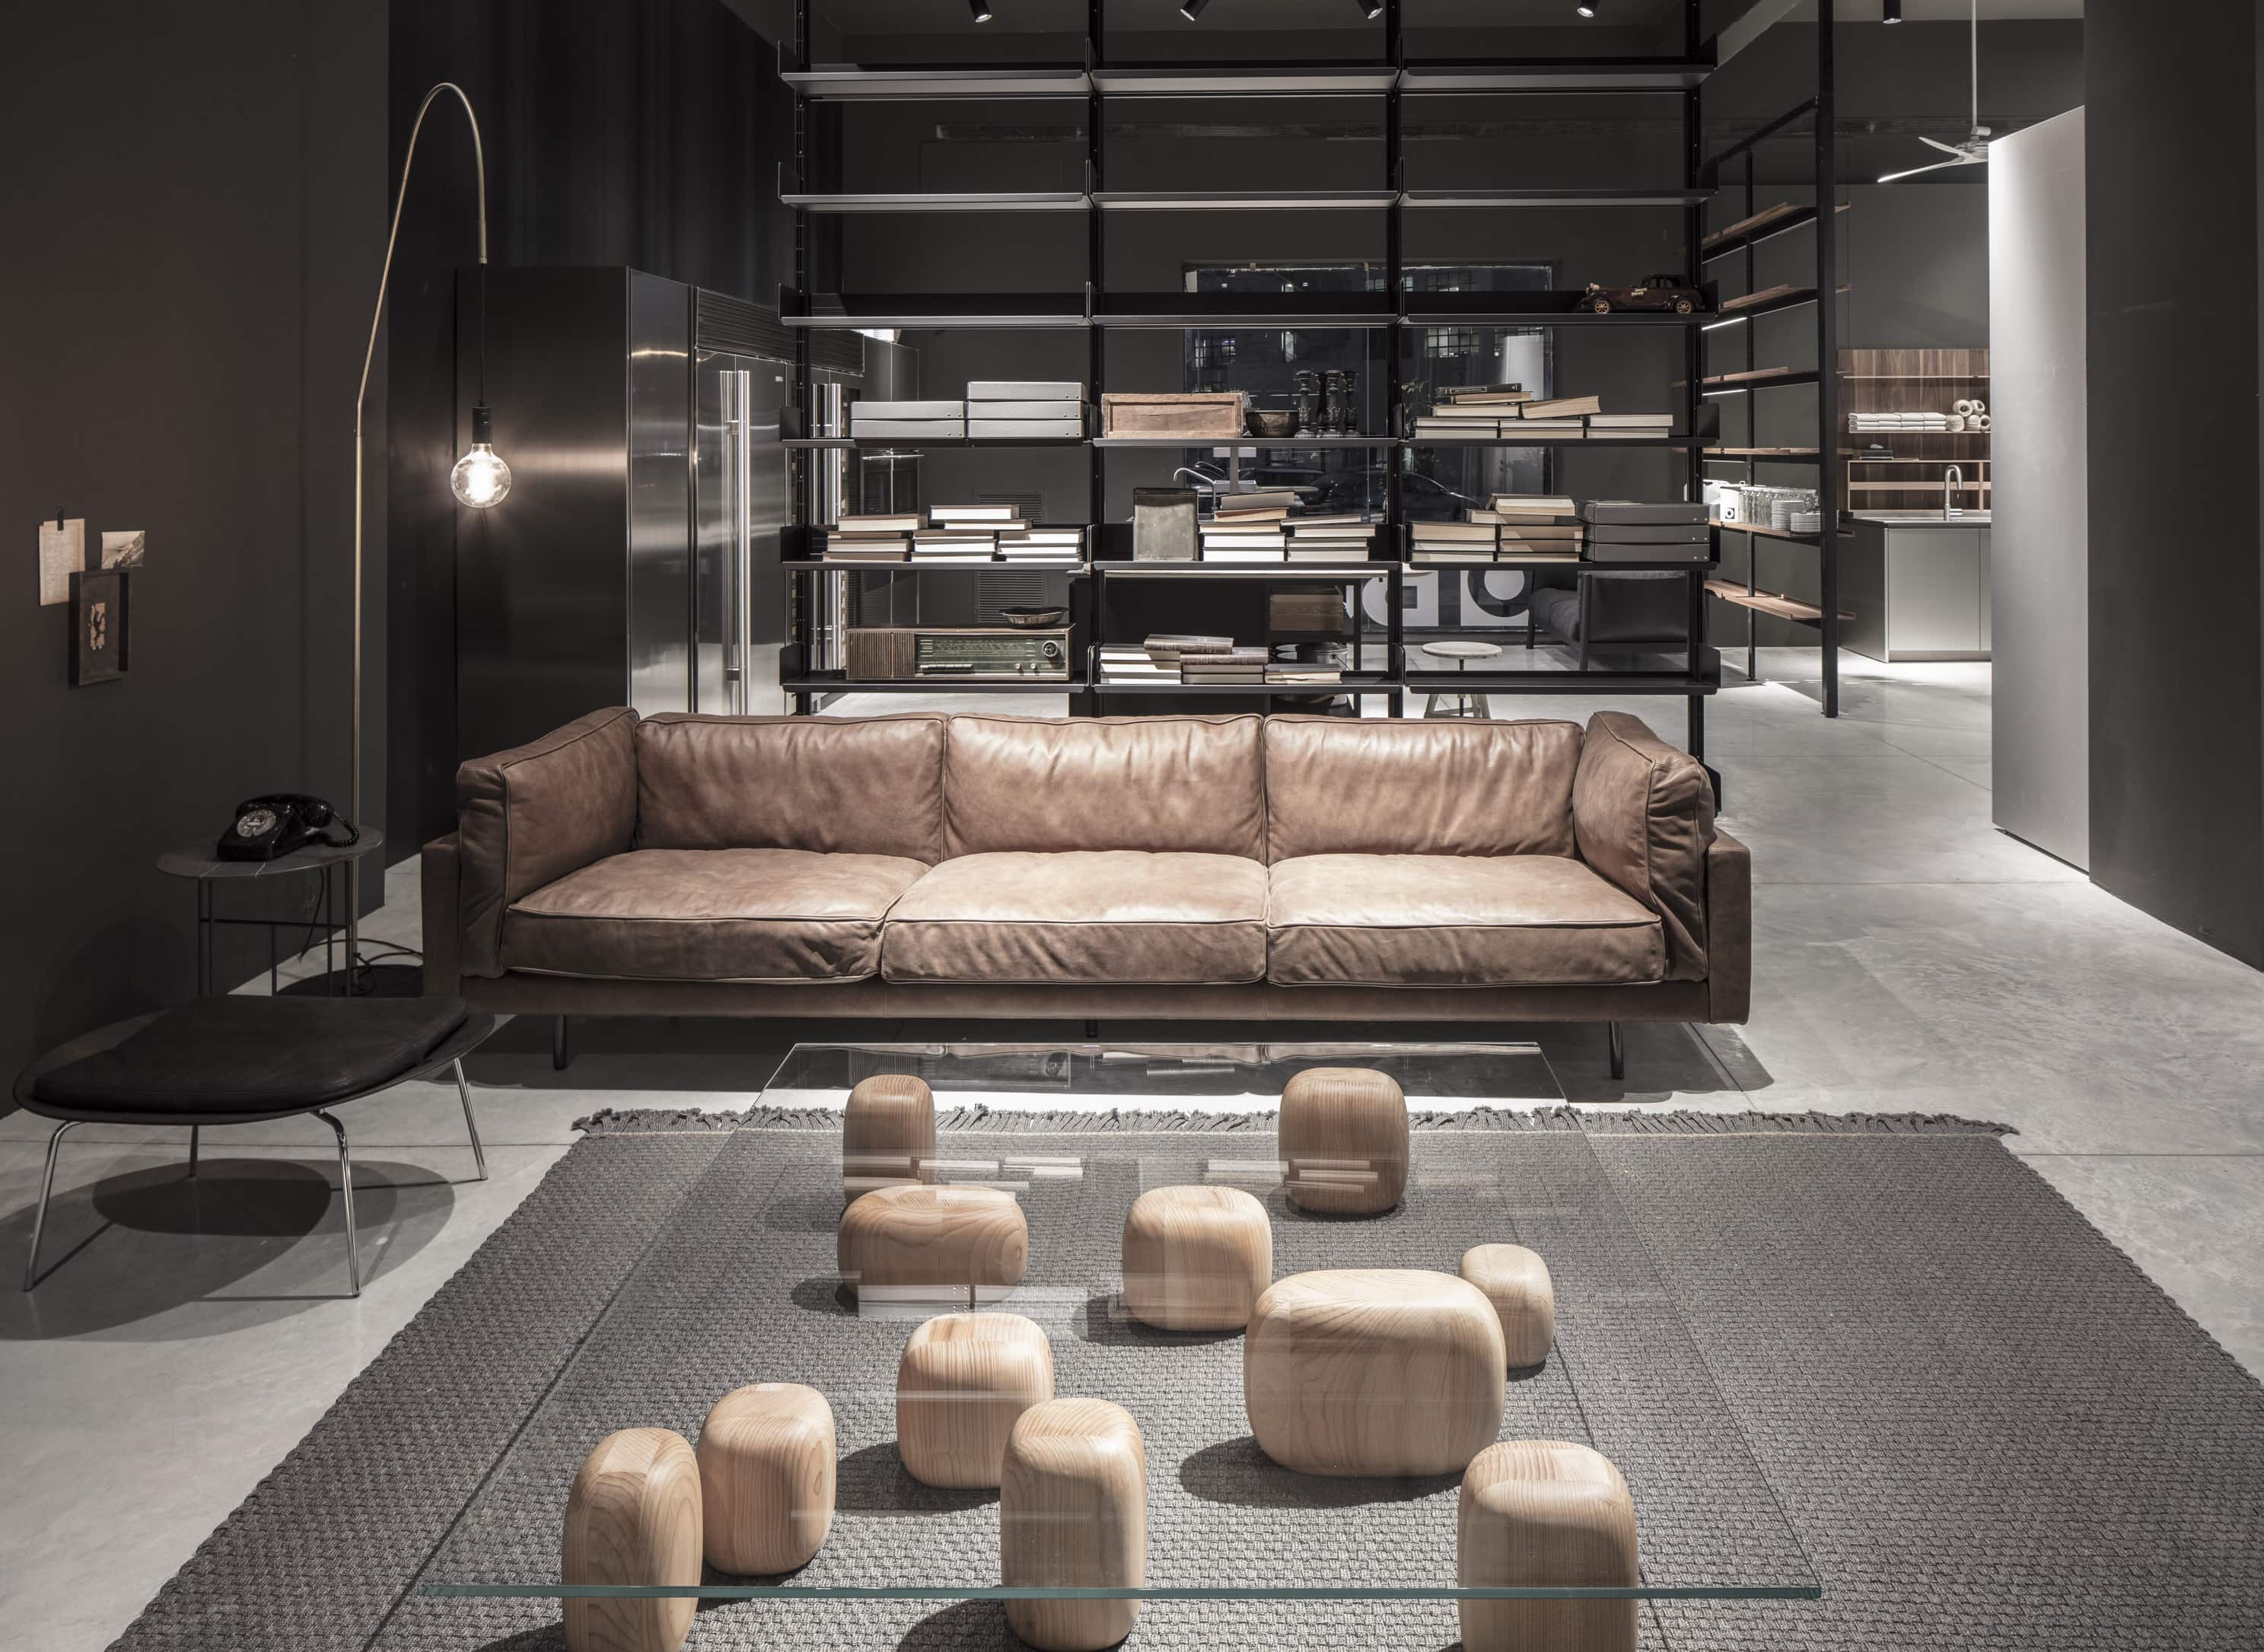 Boffi Studio Tel Aviv presents De Padova collection